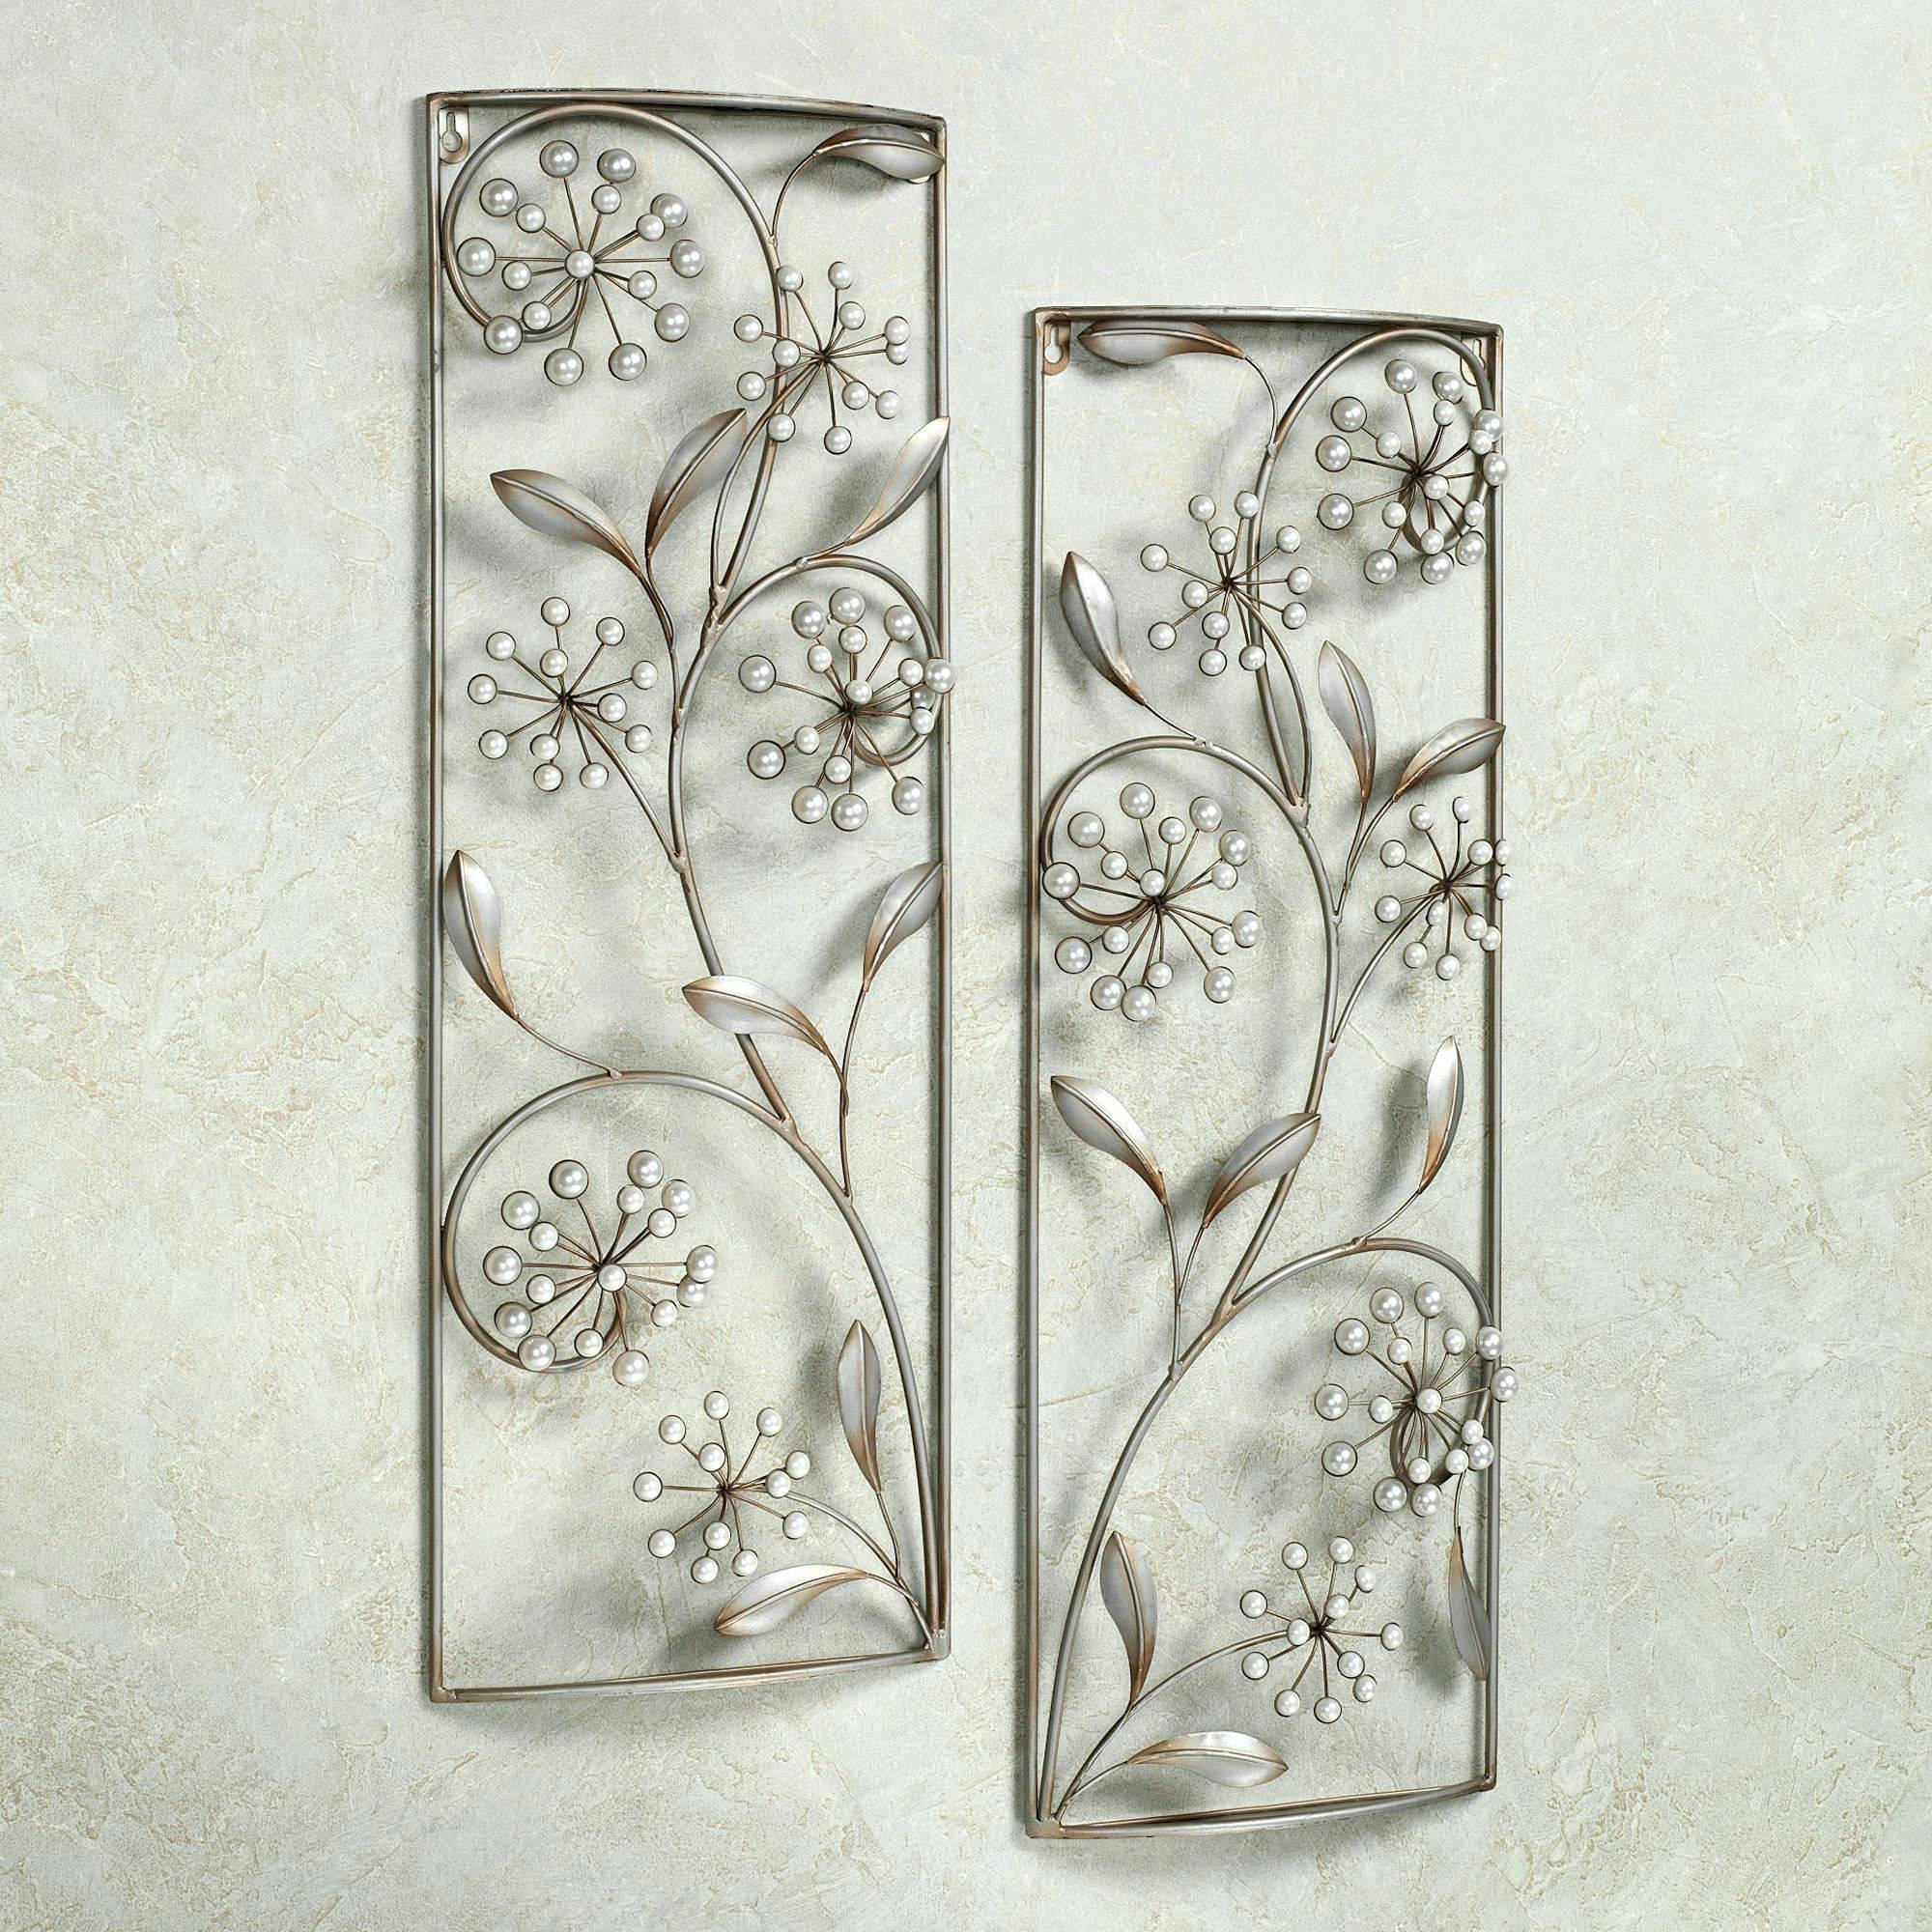 Wall Arts ~ Compact Metallic Wall Decor 9 Black And Silver Metal Intended For Most Up To Date Black And Silver Metal Wall Art (View 14 of 20)